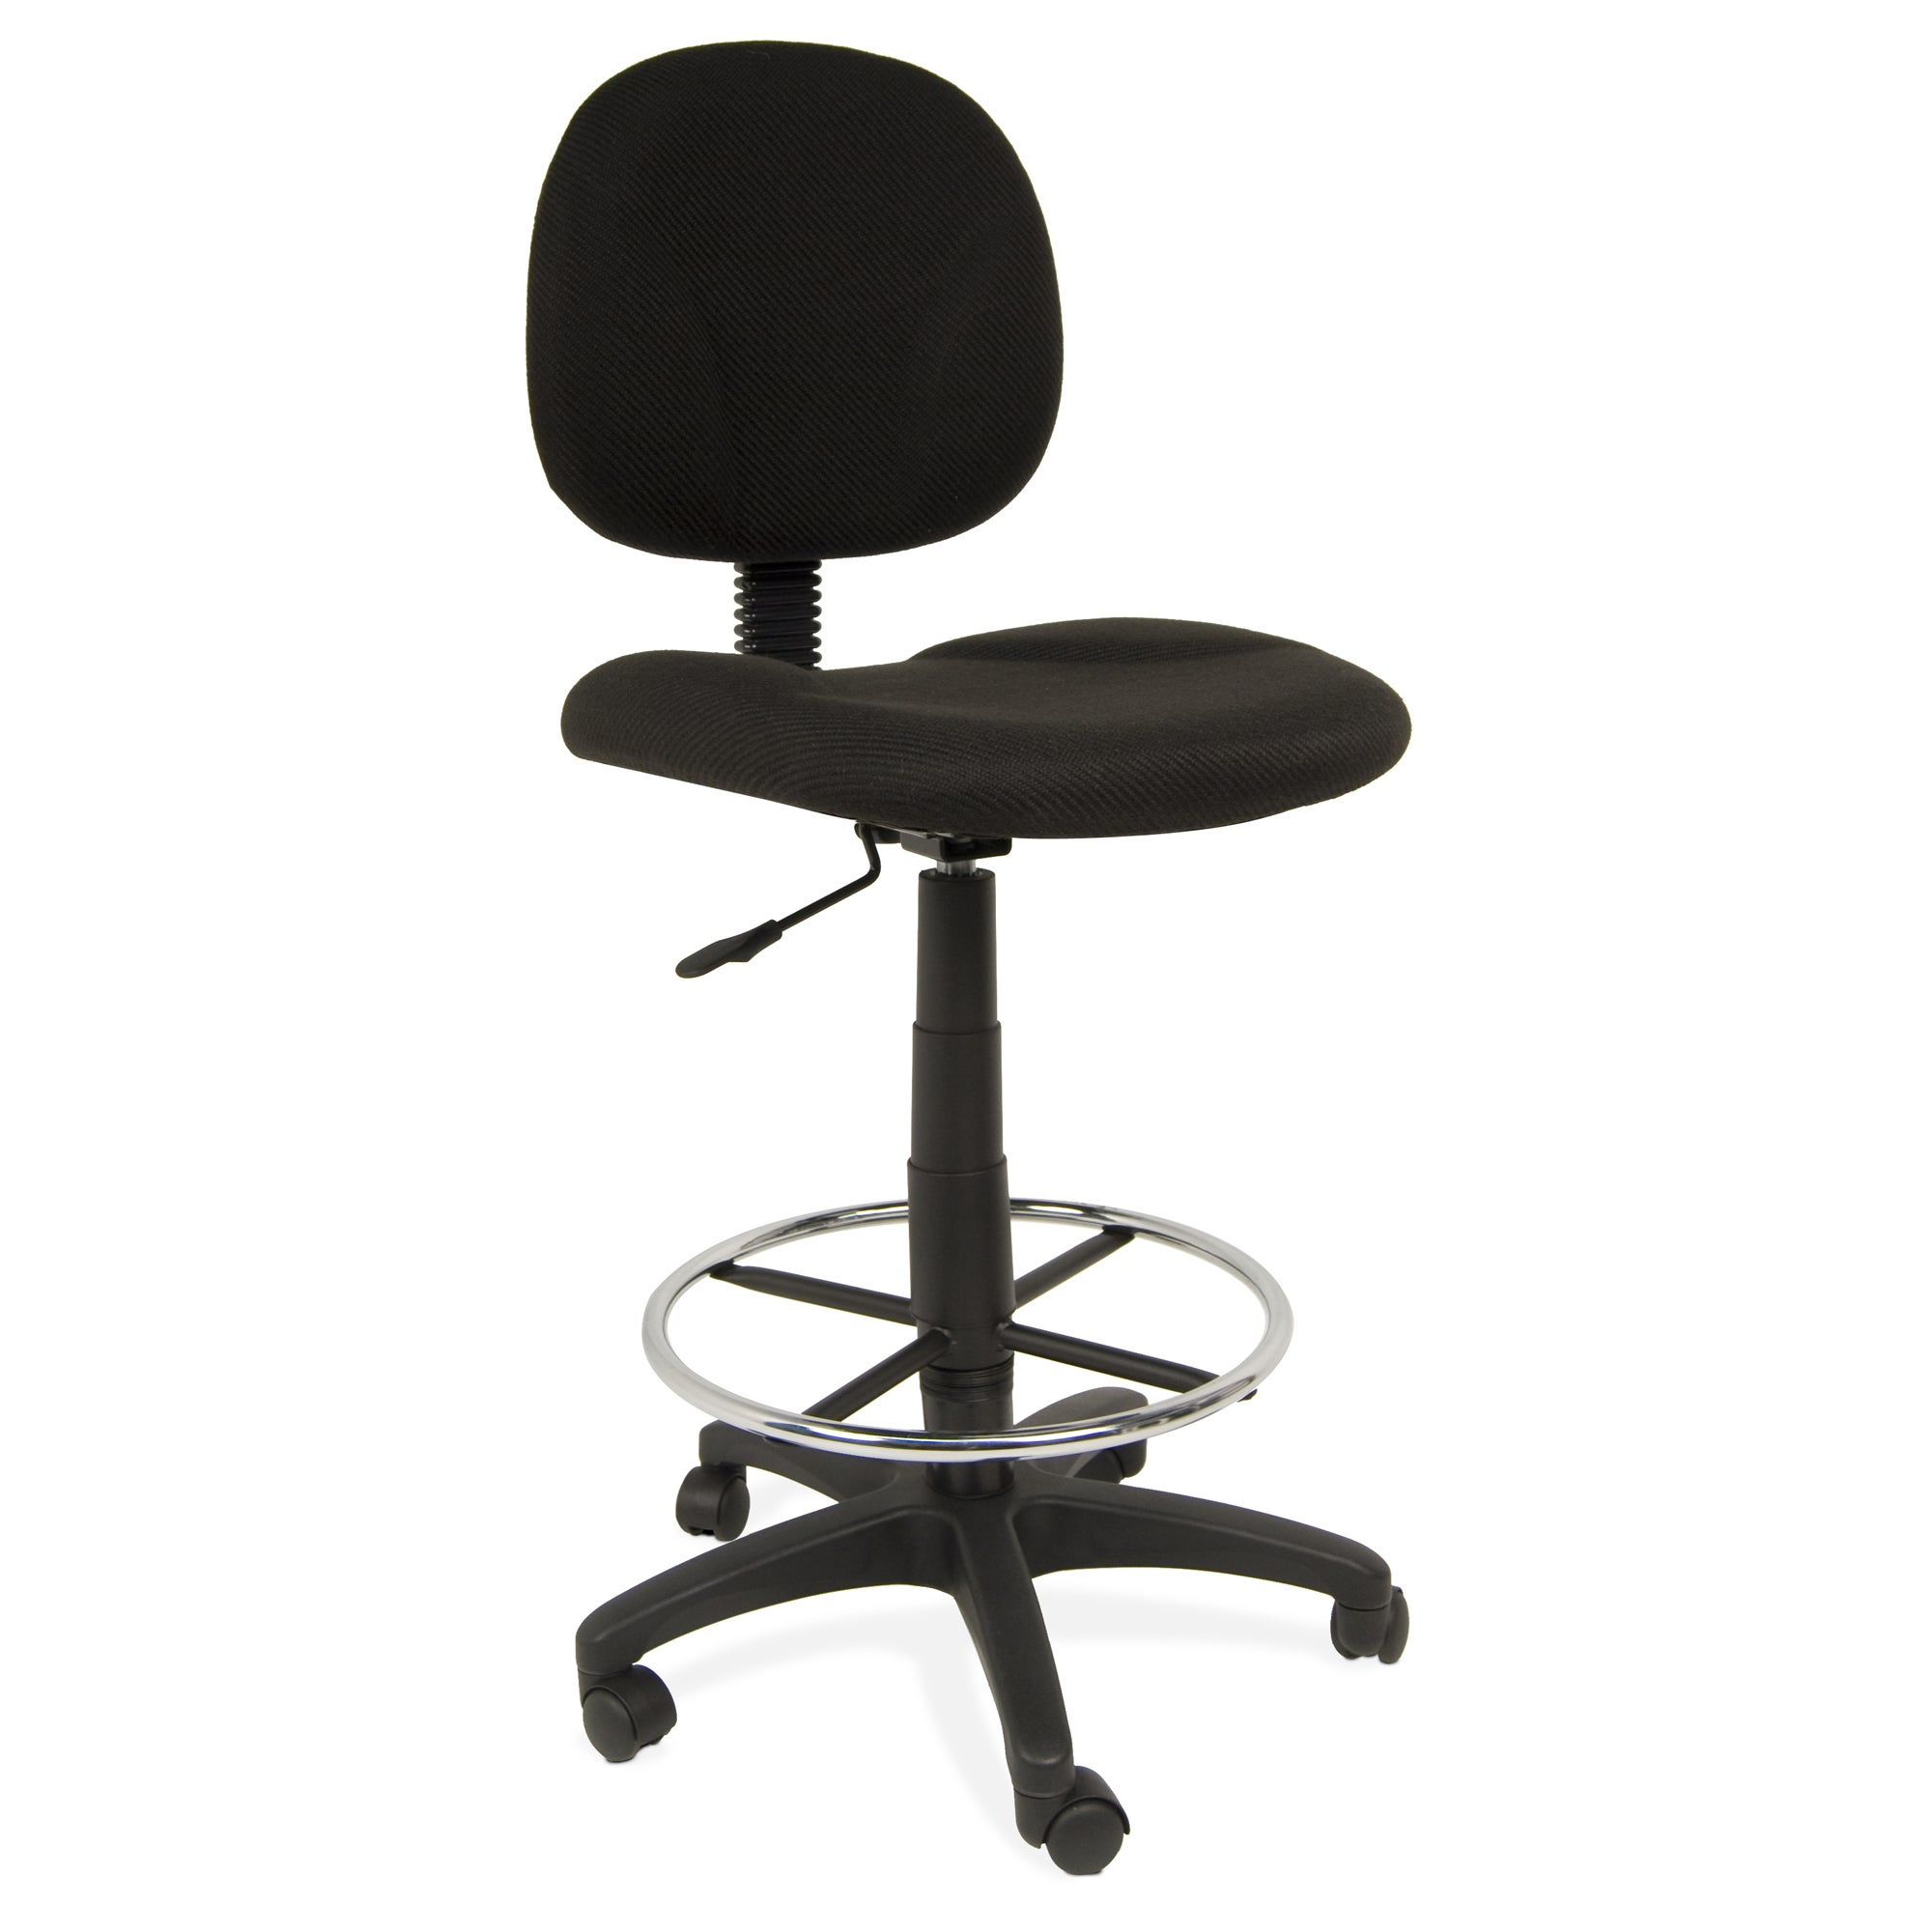 Studio Designs Adjustable Ergo Pro Chair Black with Contoured Padding